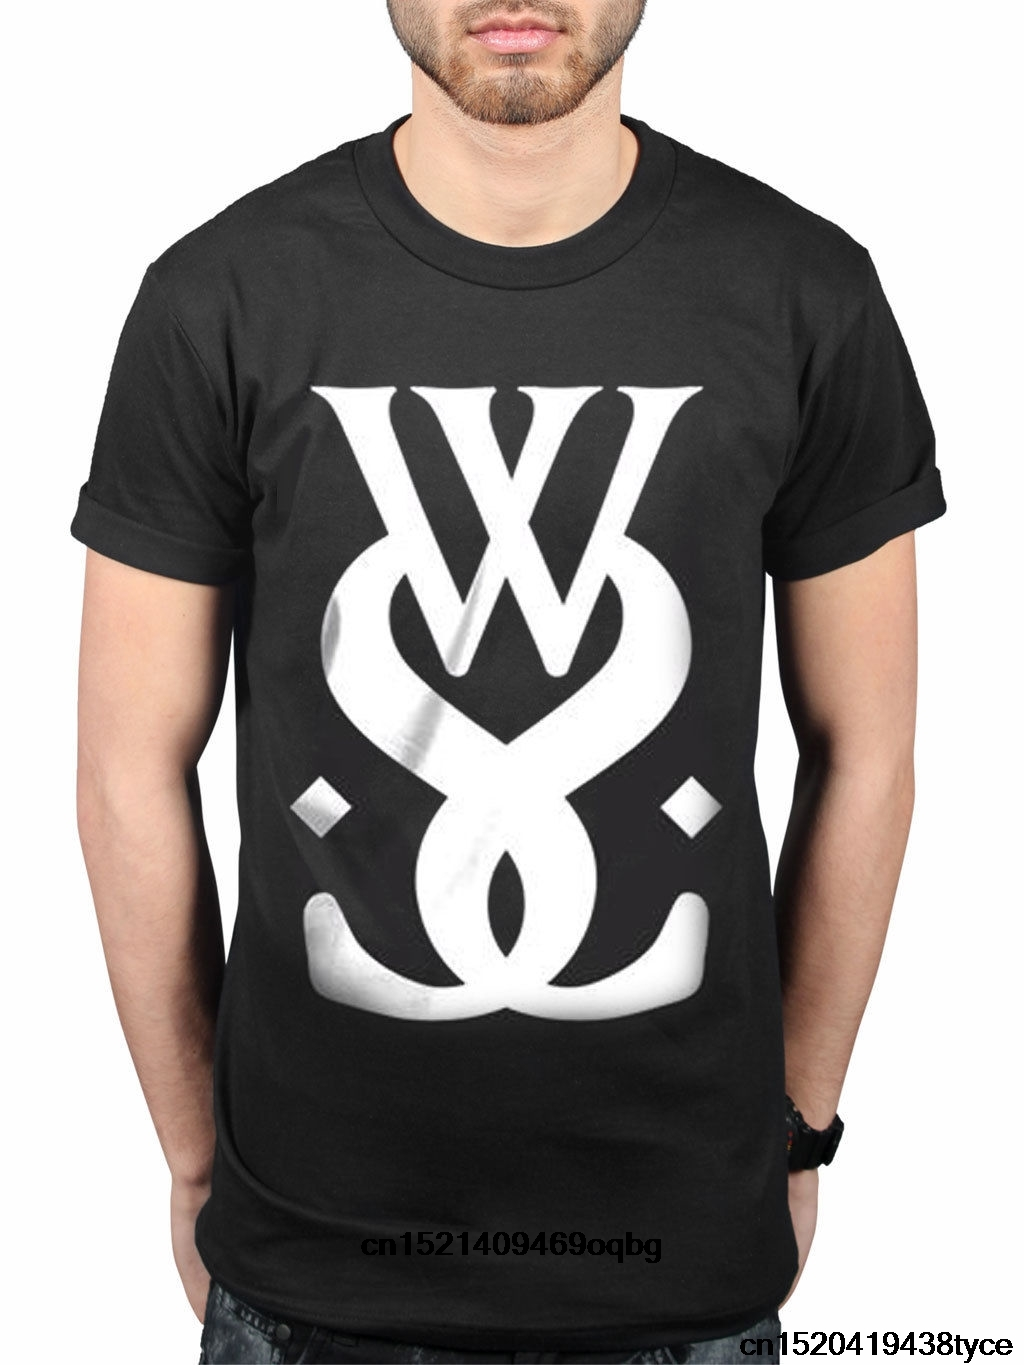 2018 New Fashion While She Sleeps Logo T Shirt Sheffield Metalcore Band Wss Death Toll Design Cool Tops In Shirts From Mens Clothing